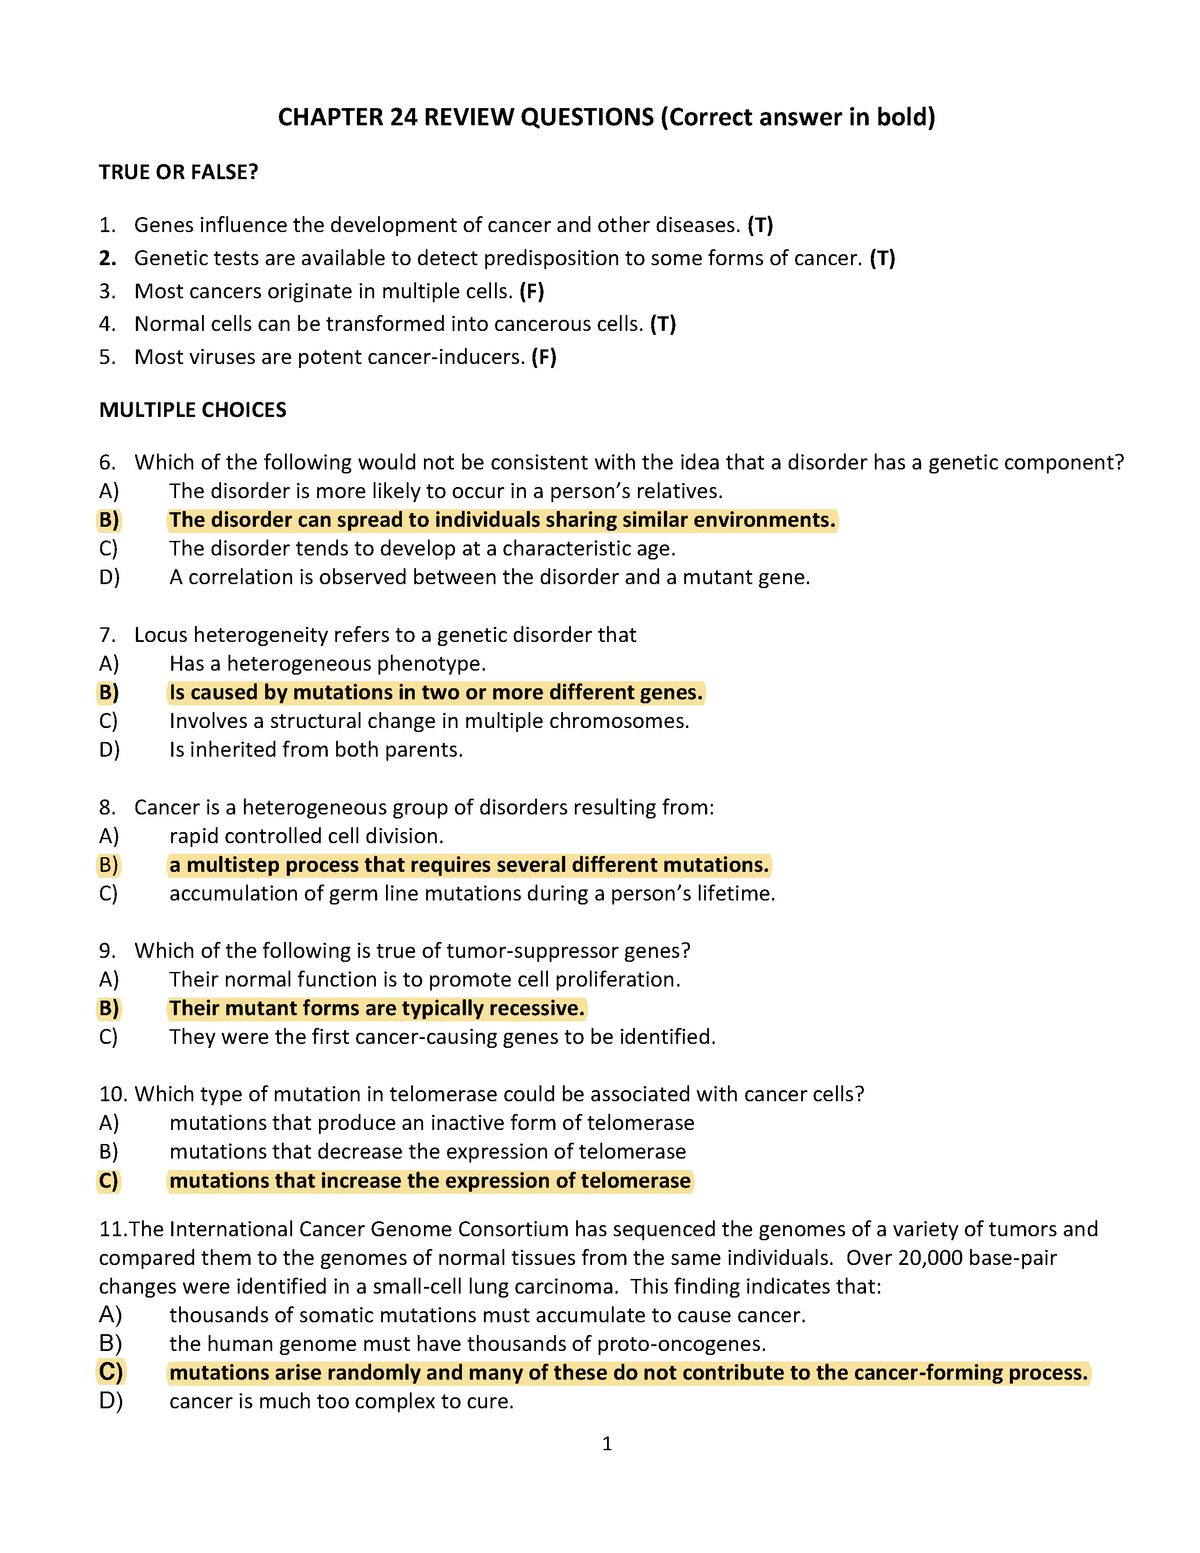 Chapter 24 Review Questions with answer key - StuDocu